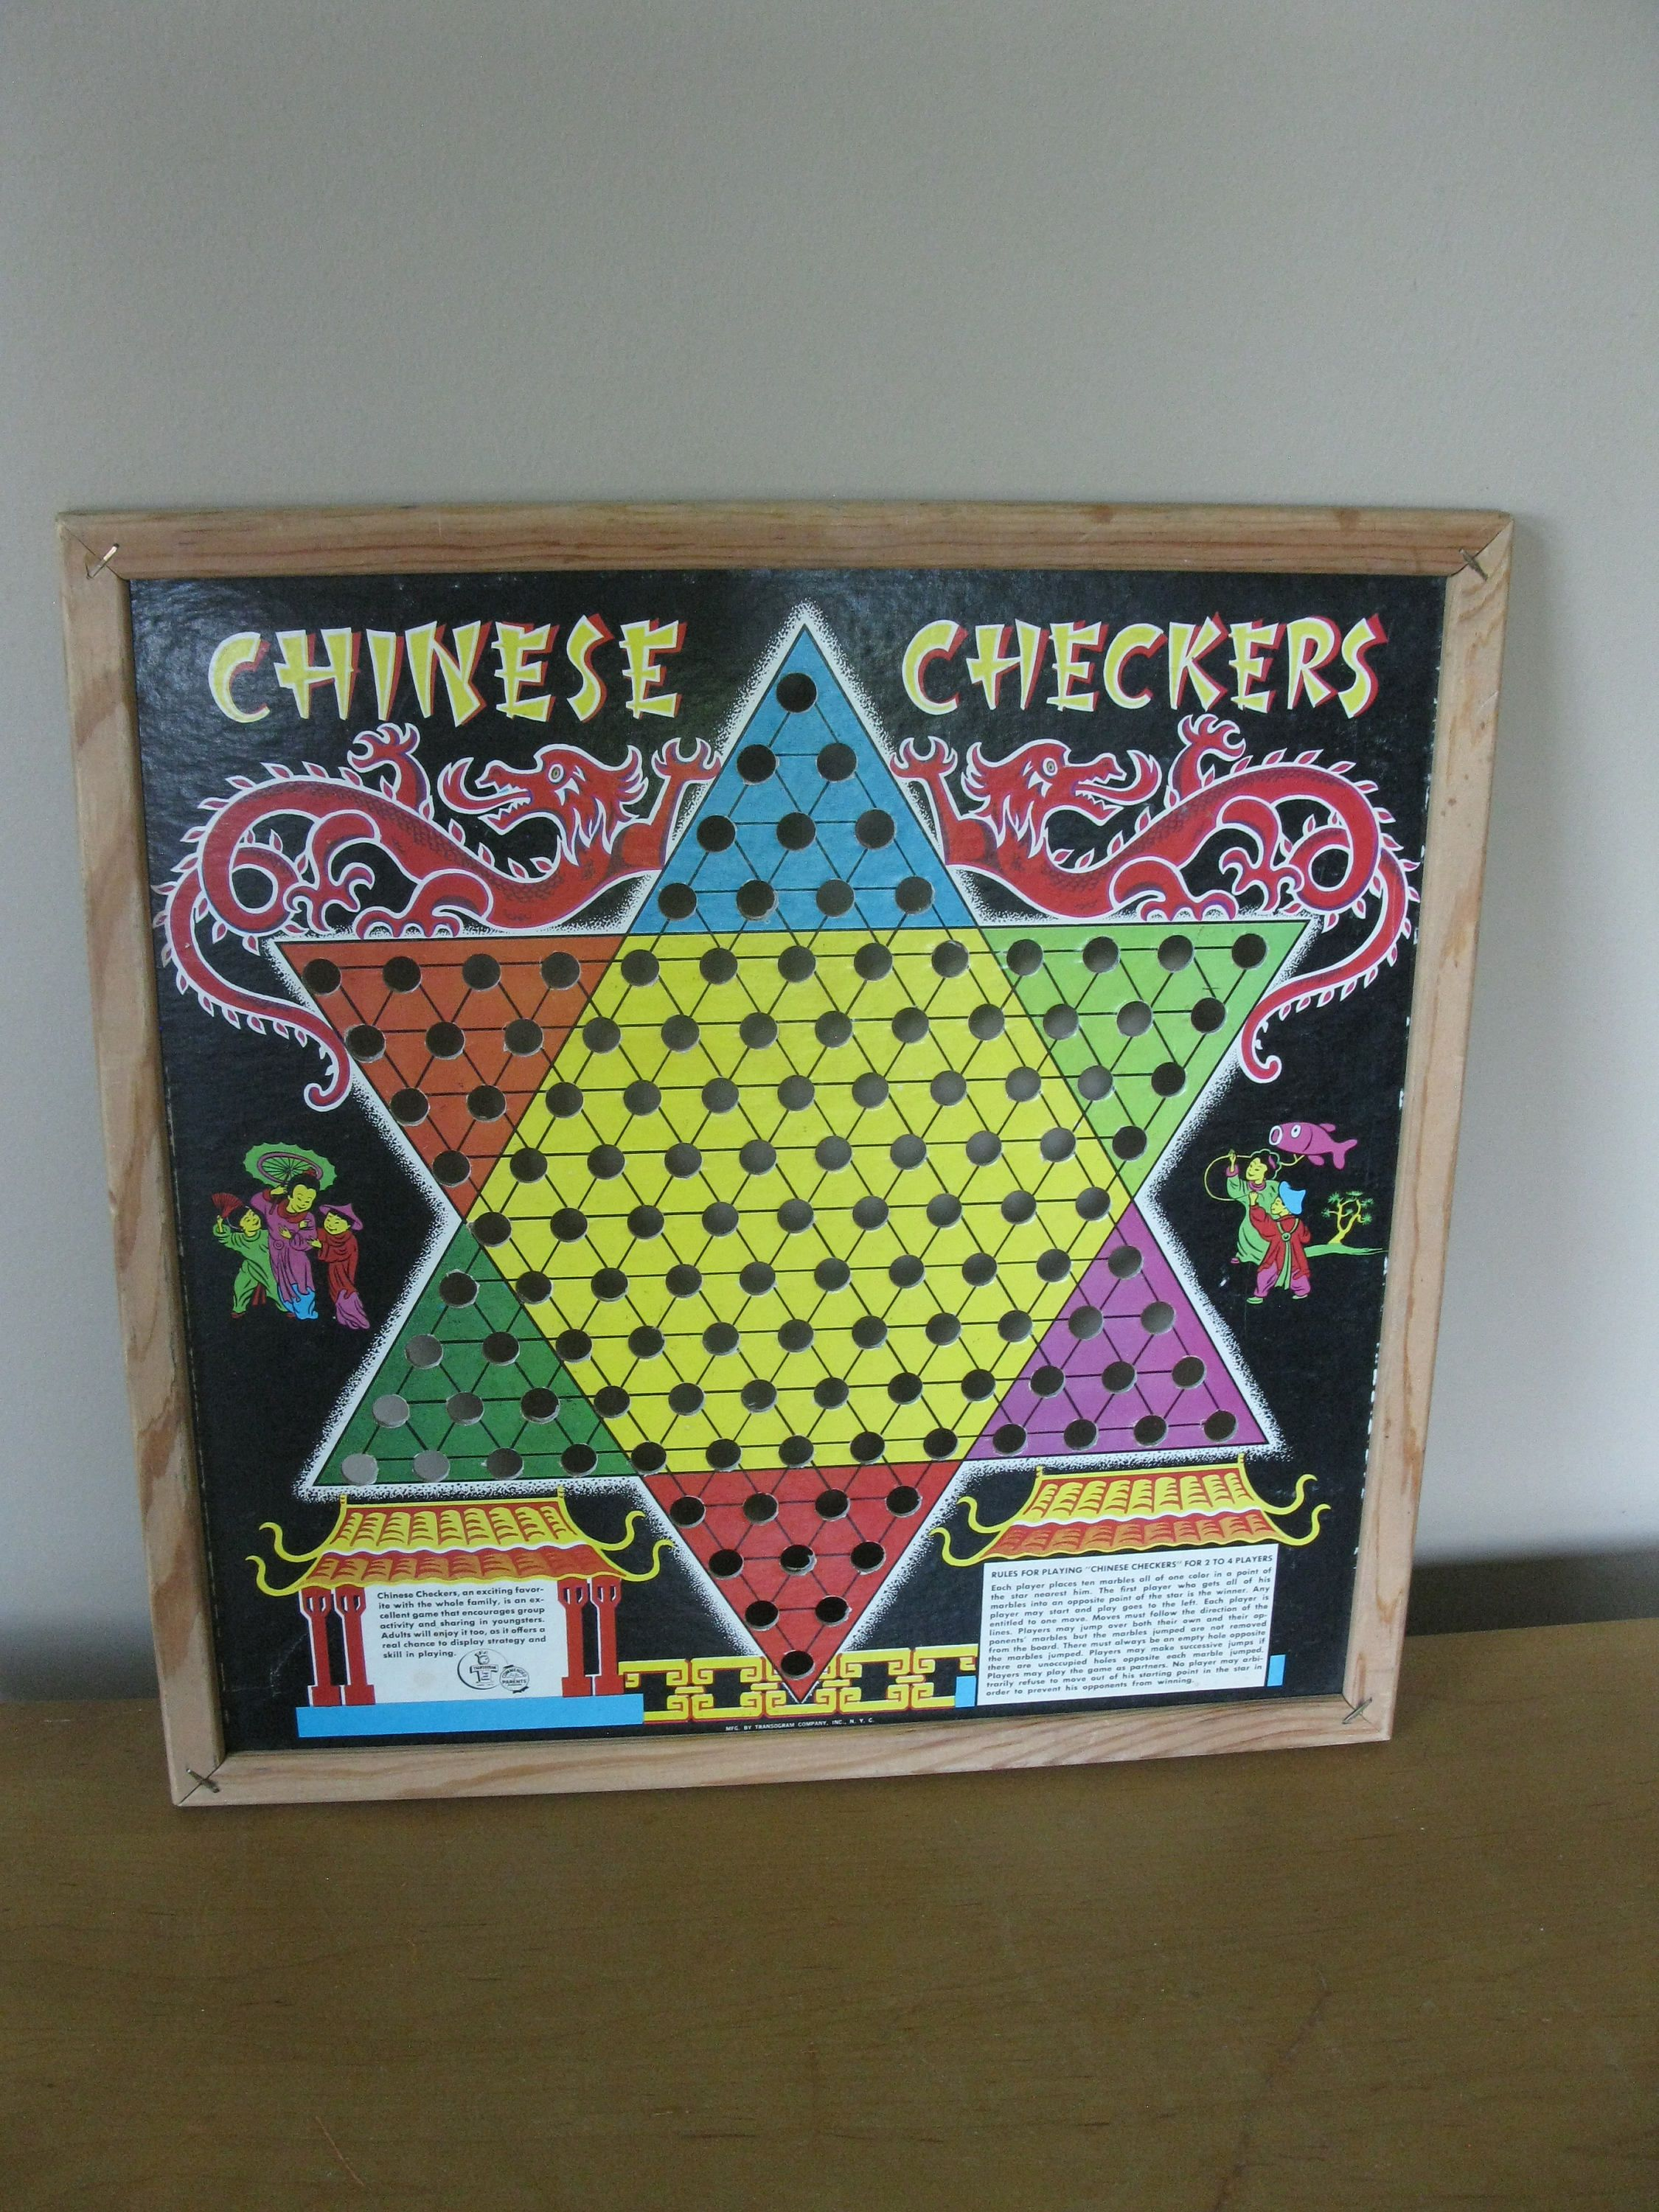 How many chinese adult plays checkers